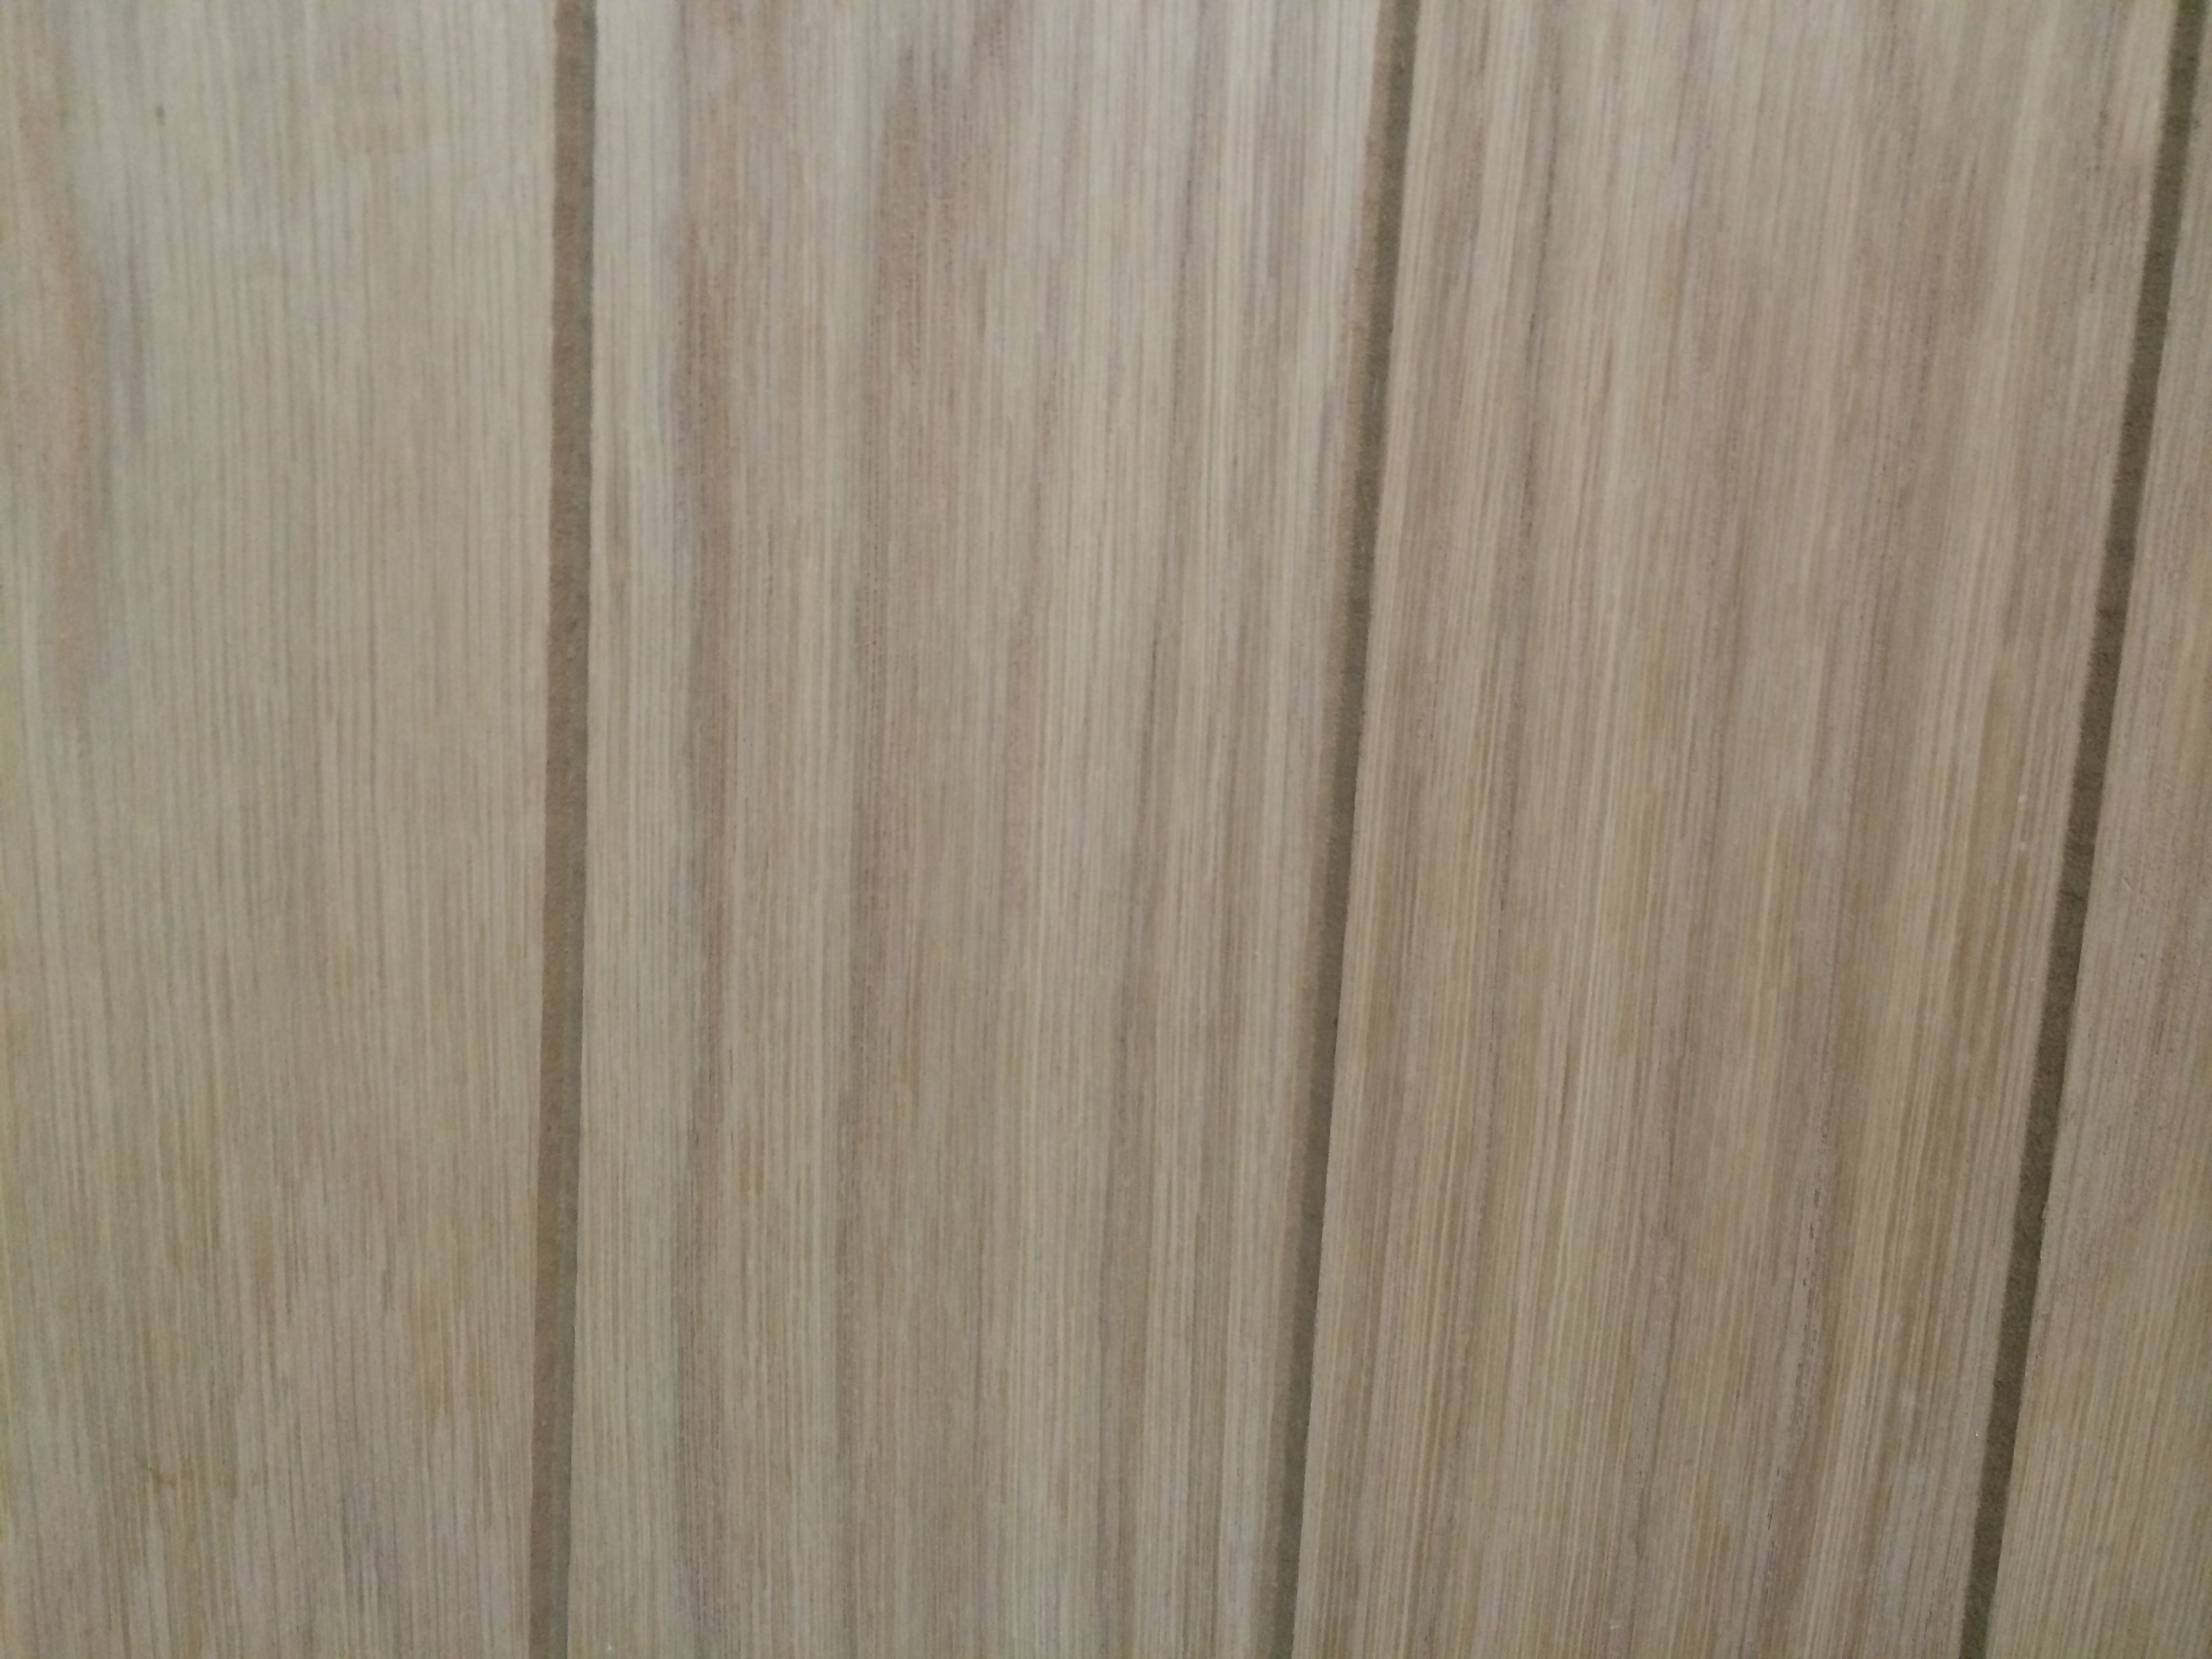 Wall Panelling Experts Wall Panelling Designs Around The Uk Wall Paneling Tongue And Groove Panelling Cool Walls